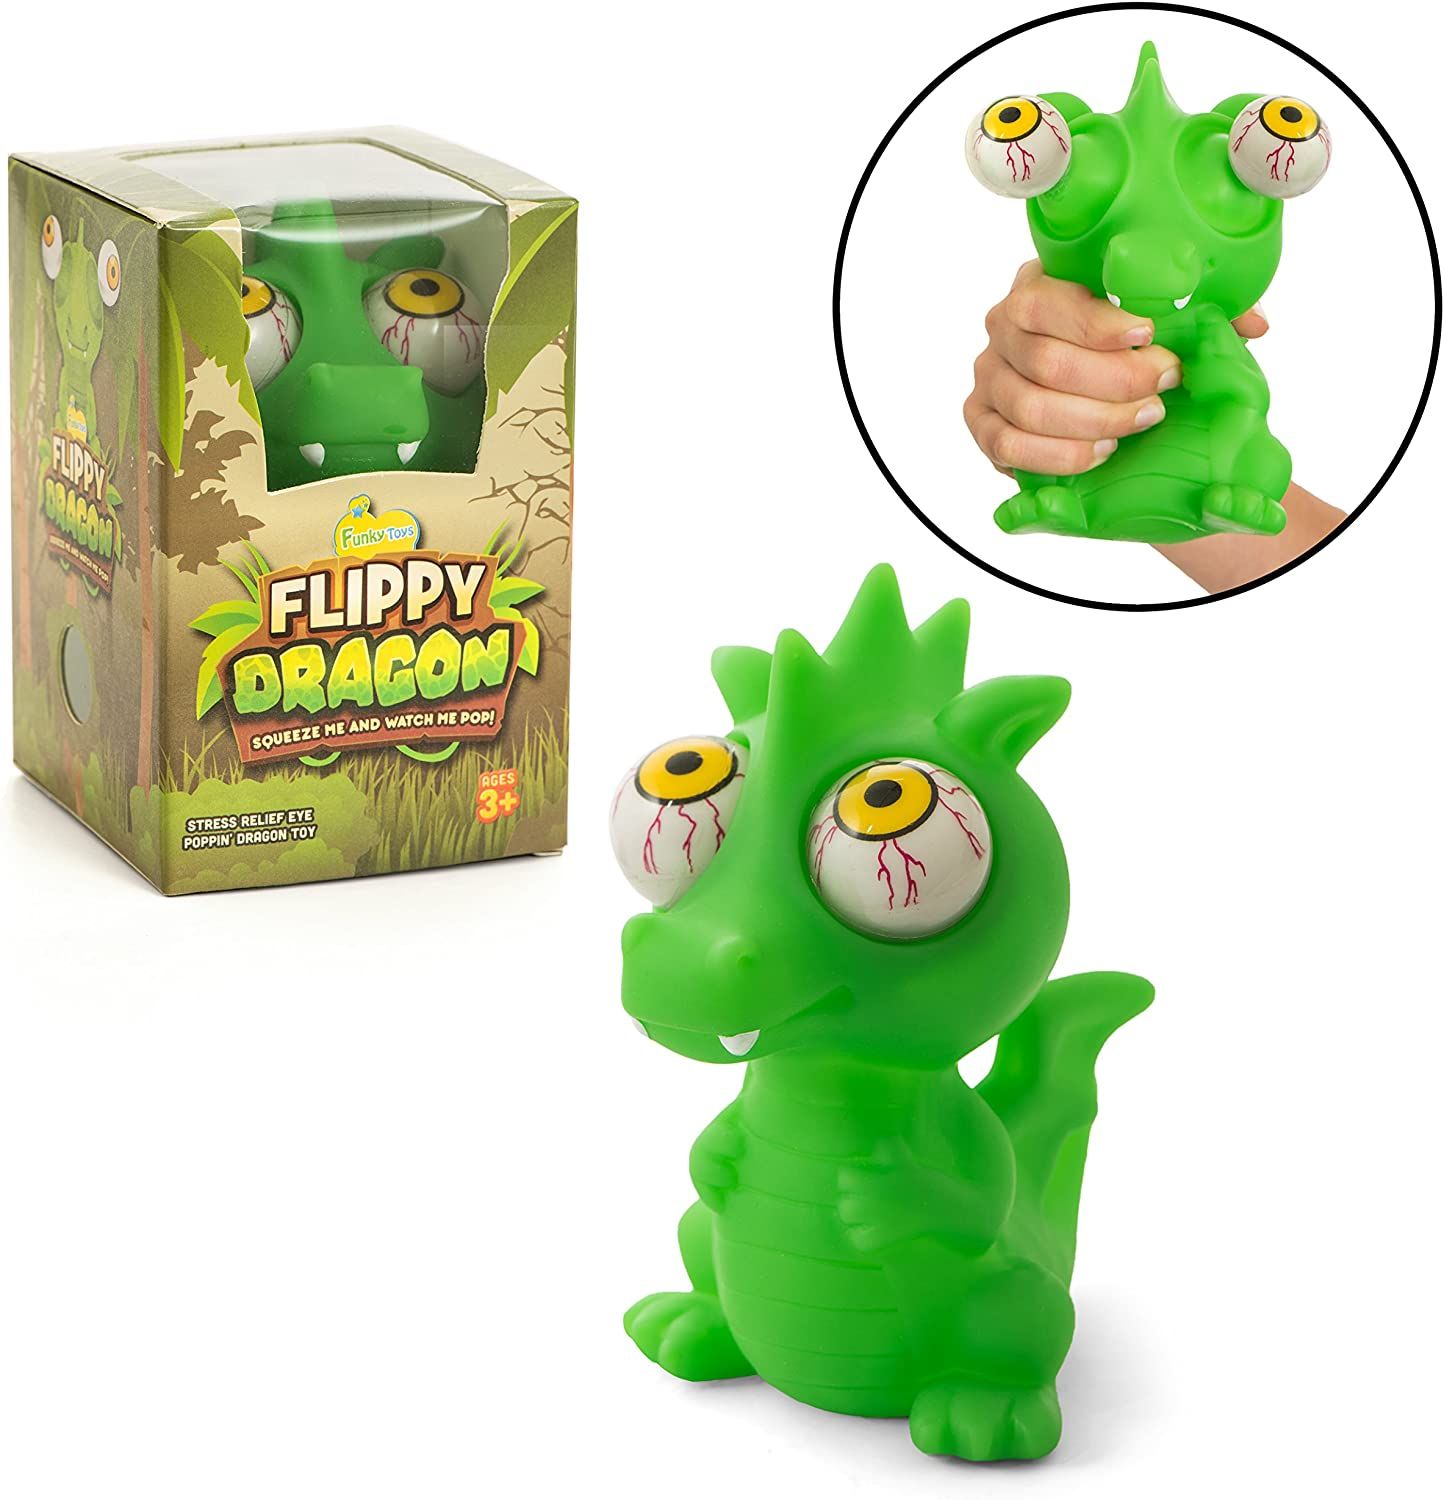 IPIDIPI TOYS Flippy Dragon Eye Popping Large Green Squishy - Gag Stocking Stuffers - Squeeze Toy for Stress Reduction - Perfect Dinosaur Gift for Boys and Girls - Great for Kids with Autism or ADHD